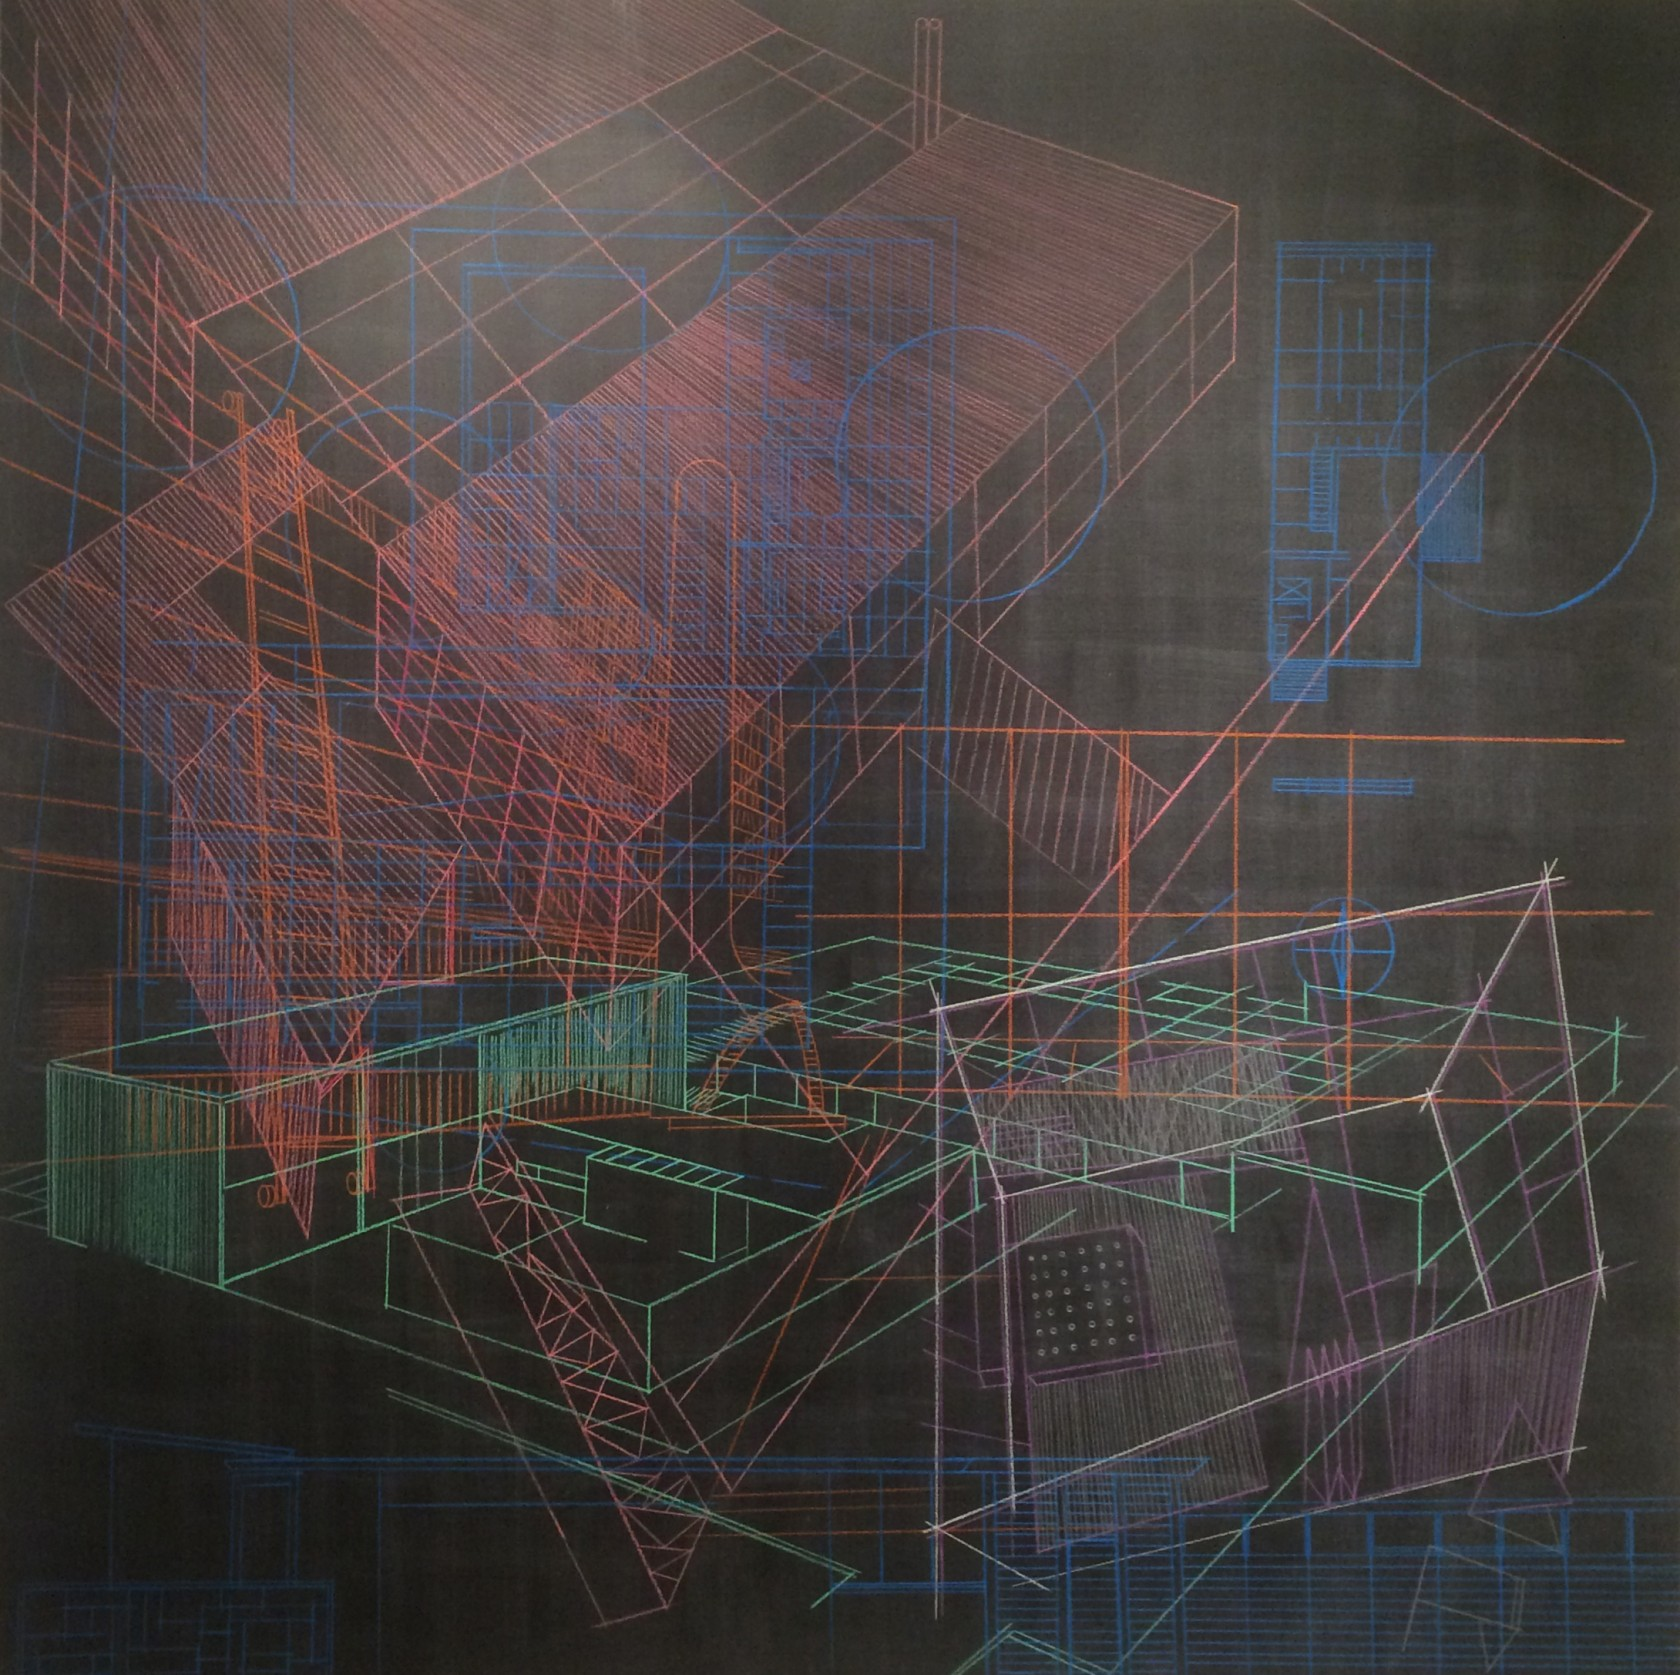 Shawn Hummel | Rapson, Smith, Knorr/Elliot | Prismacolor and acrylic paint on birch panel